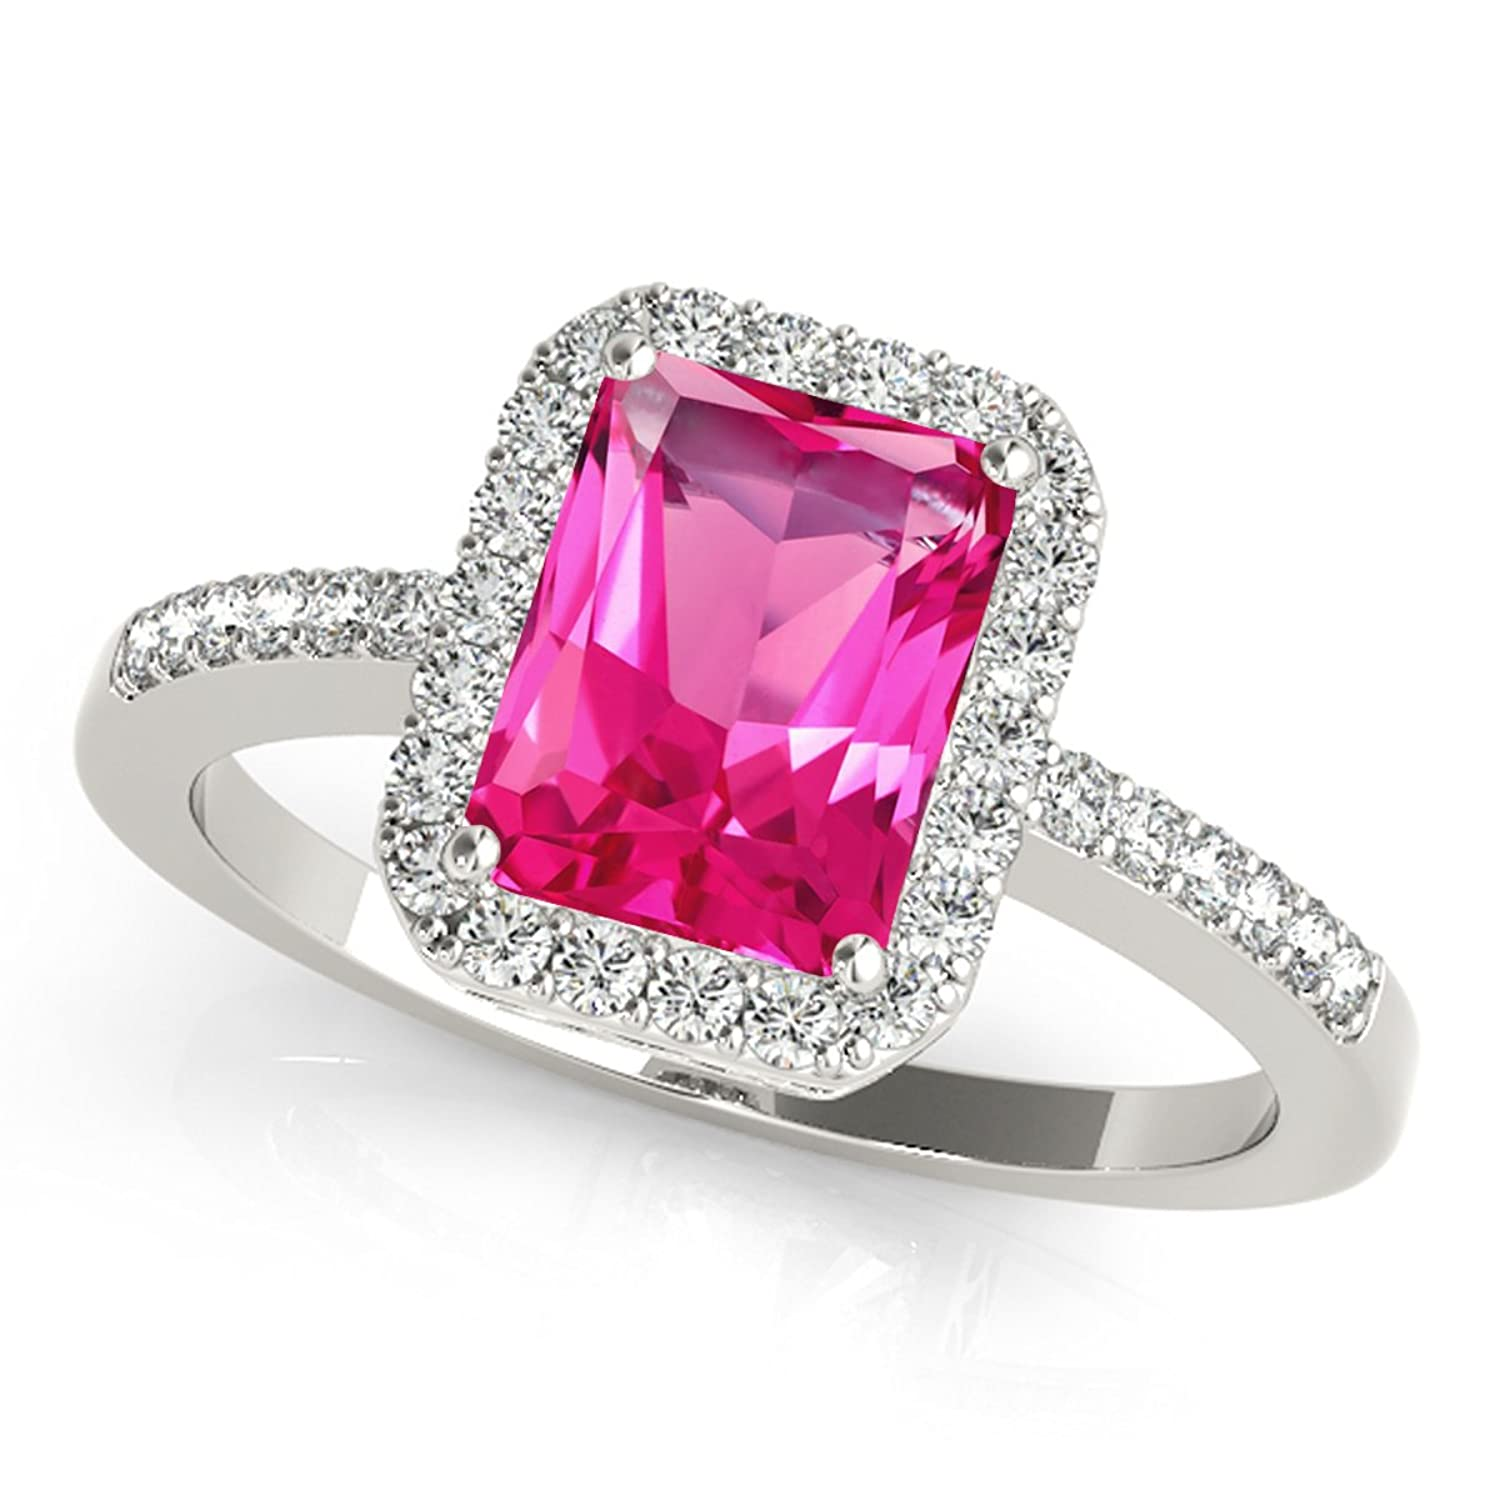 Amazon.com: 3.15 Ct. Ttw Diamond and Emerald Shaped Pink Topaz Ring ...